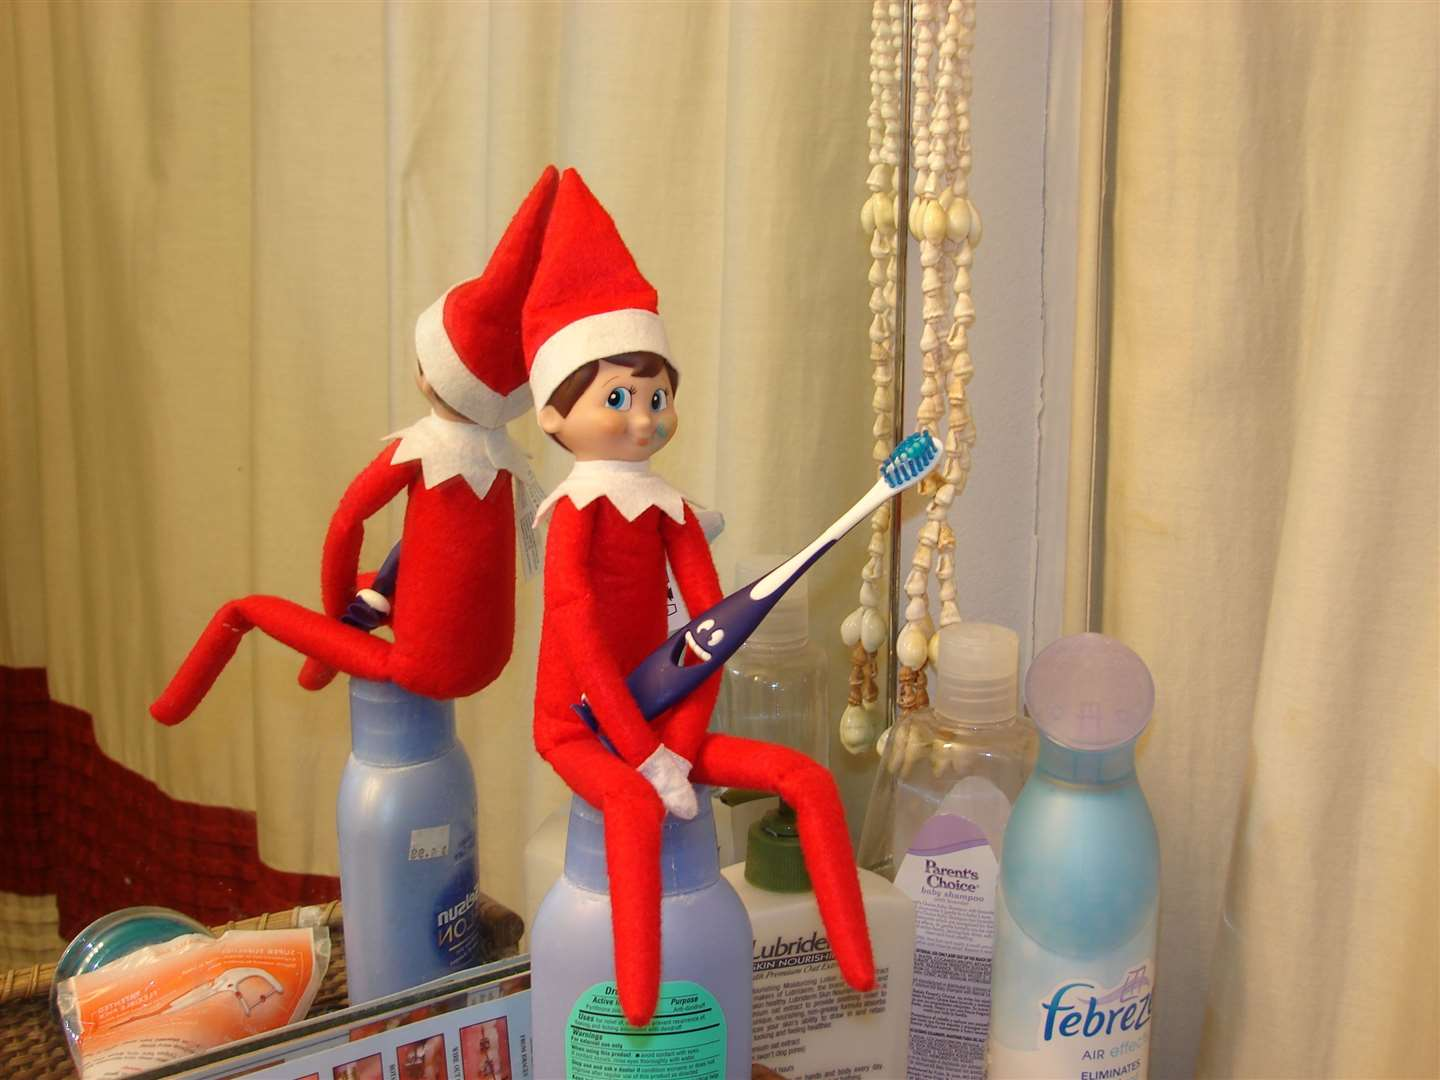 Be prepared for your elf to move around your home when you aren't looking!